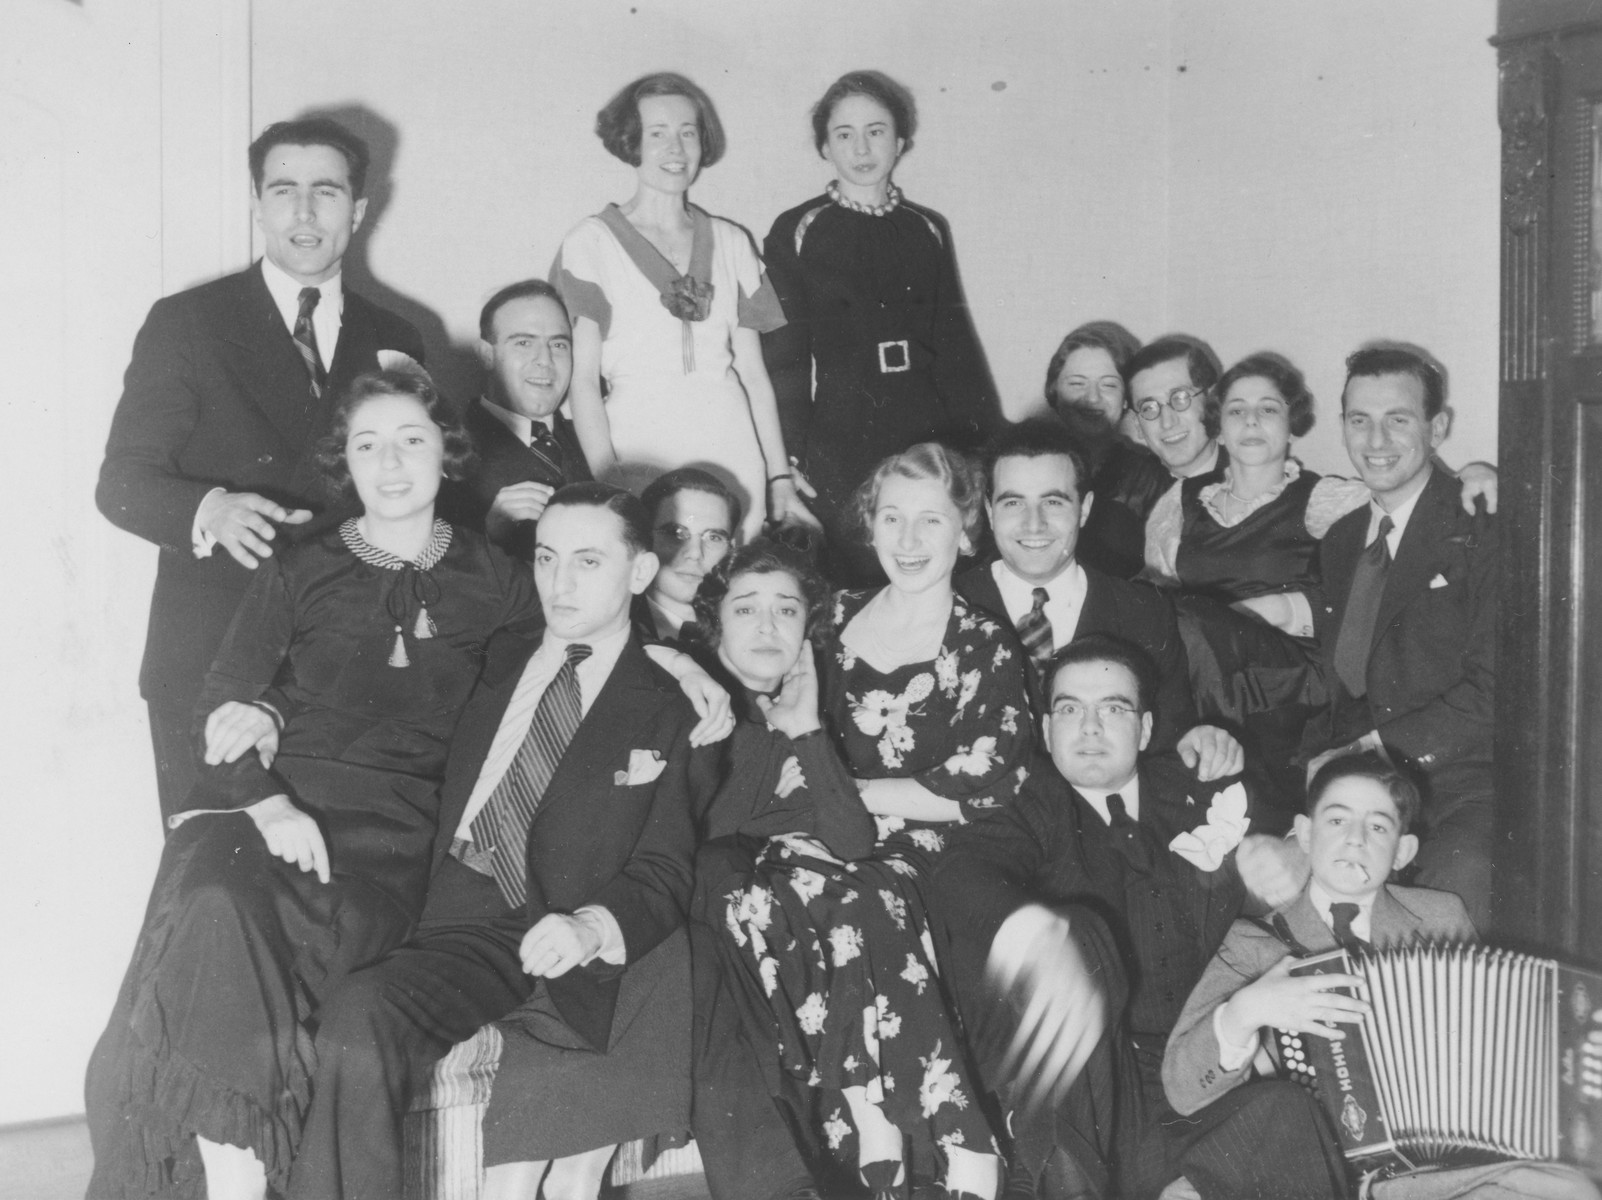 Gathering of a Fascist social club in Berlin.  Gitta Schadur is pictured in the center with her hand on her cheek.